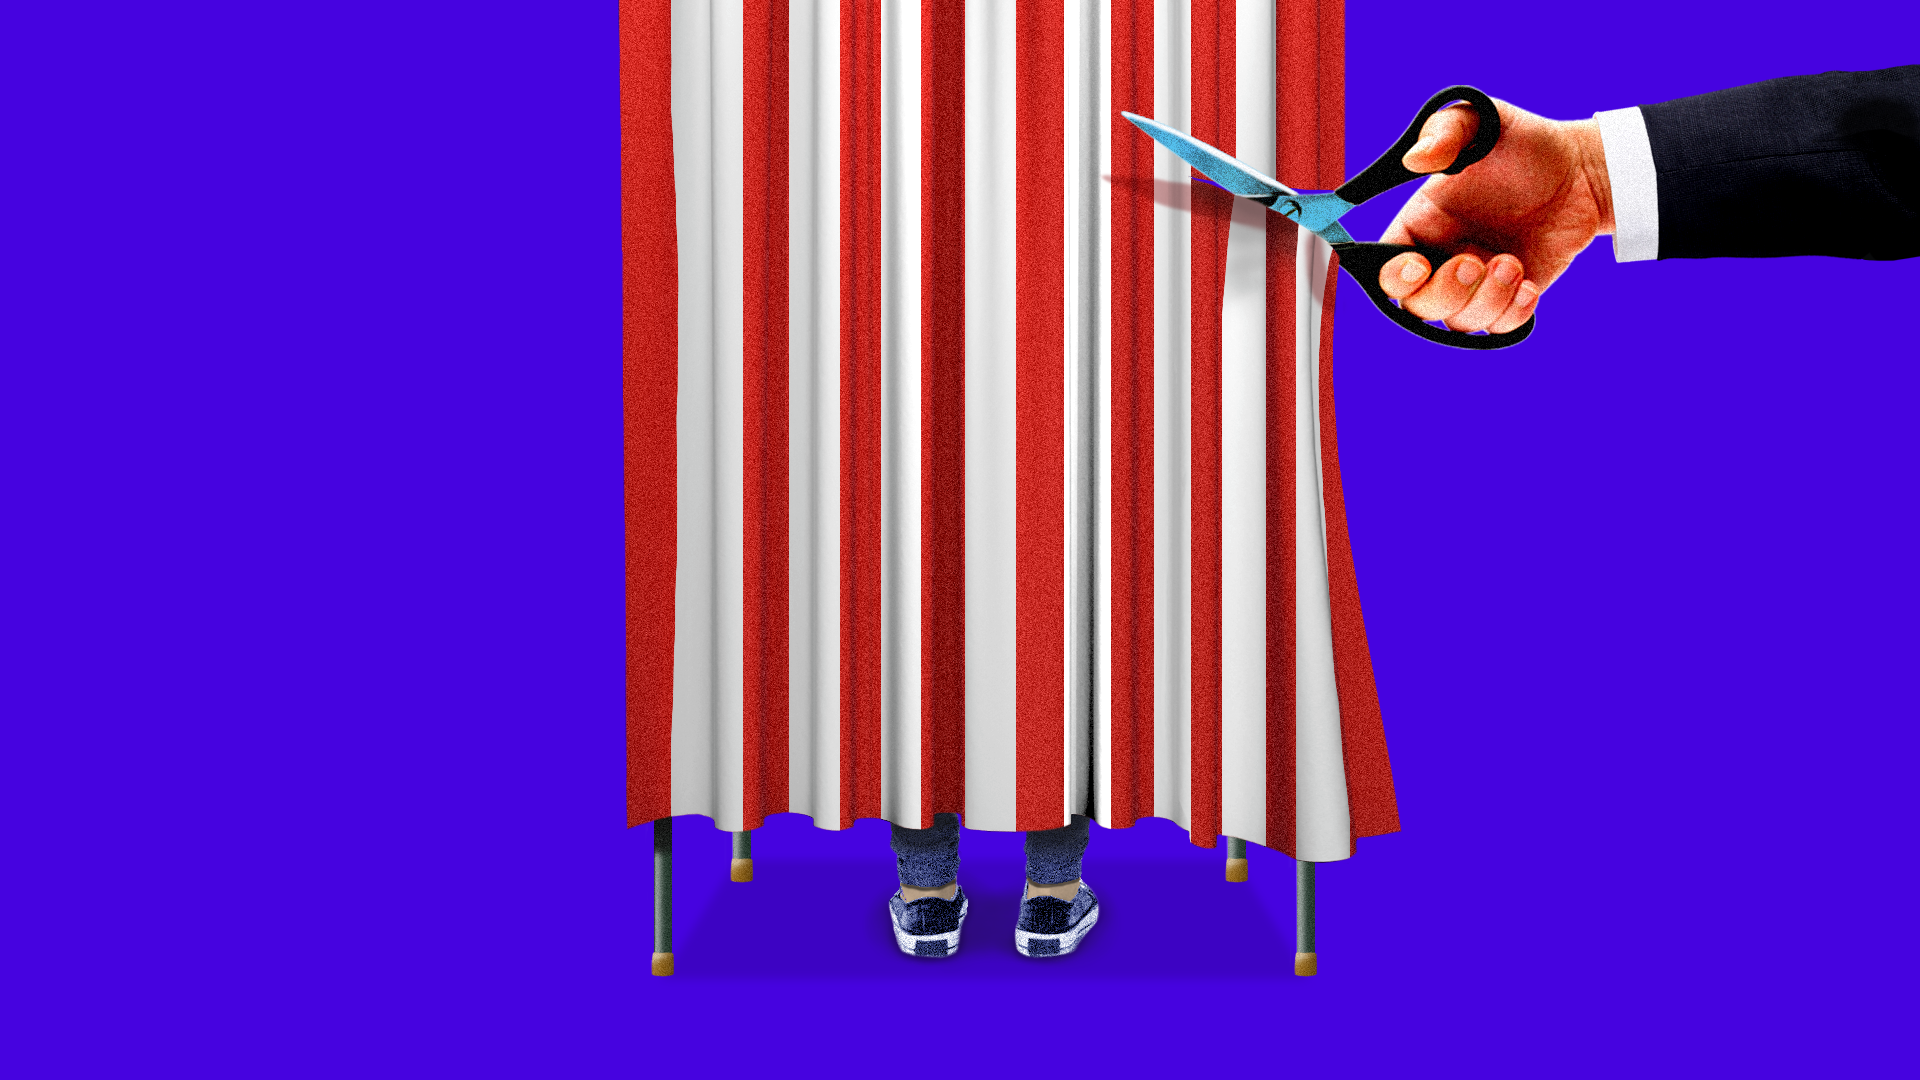 Illustration of scissors cutting a polling both drape.